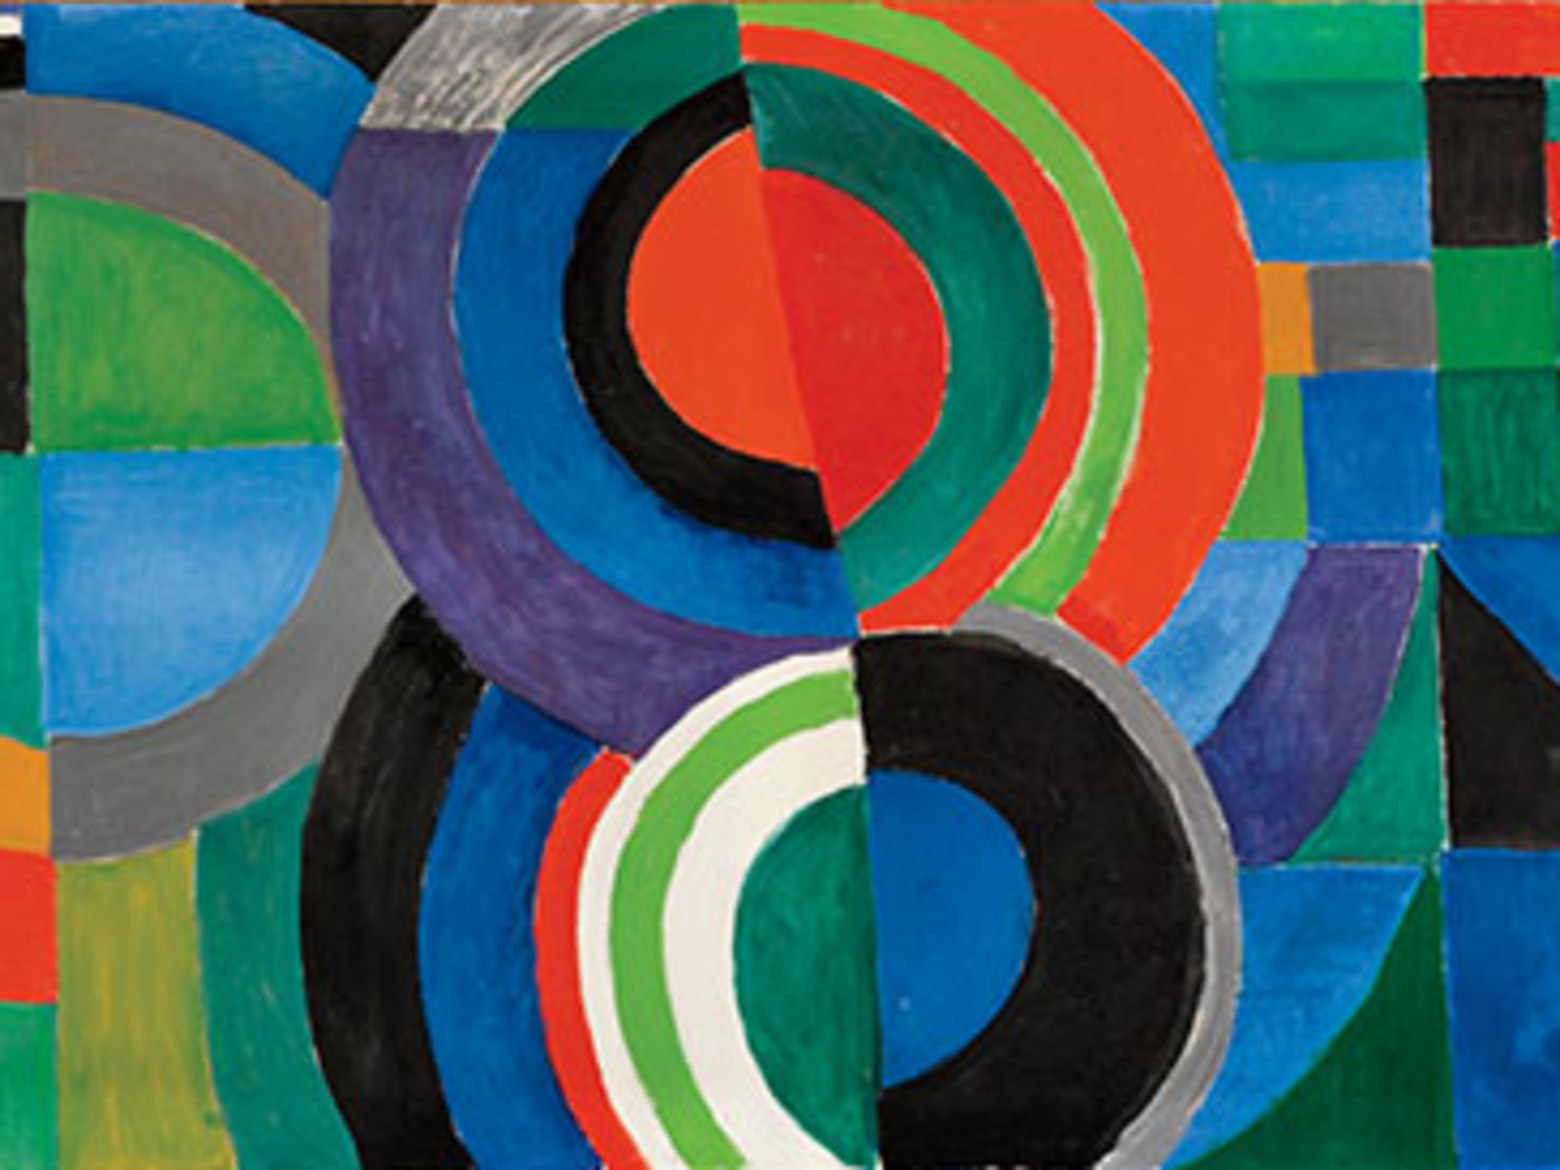 4776 as well Orphism Sonia Delaunay also Shiny Mirror Glazed Marble Cake Olganoskovaa furthermore New Home Designs In Pakistan in addition Soviet Vintage Portable Record Player 3. on russian style interior design